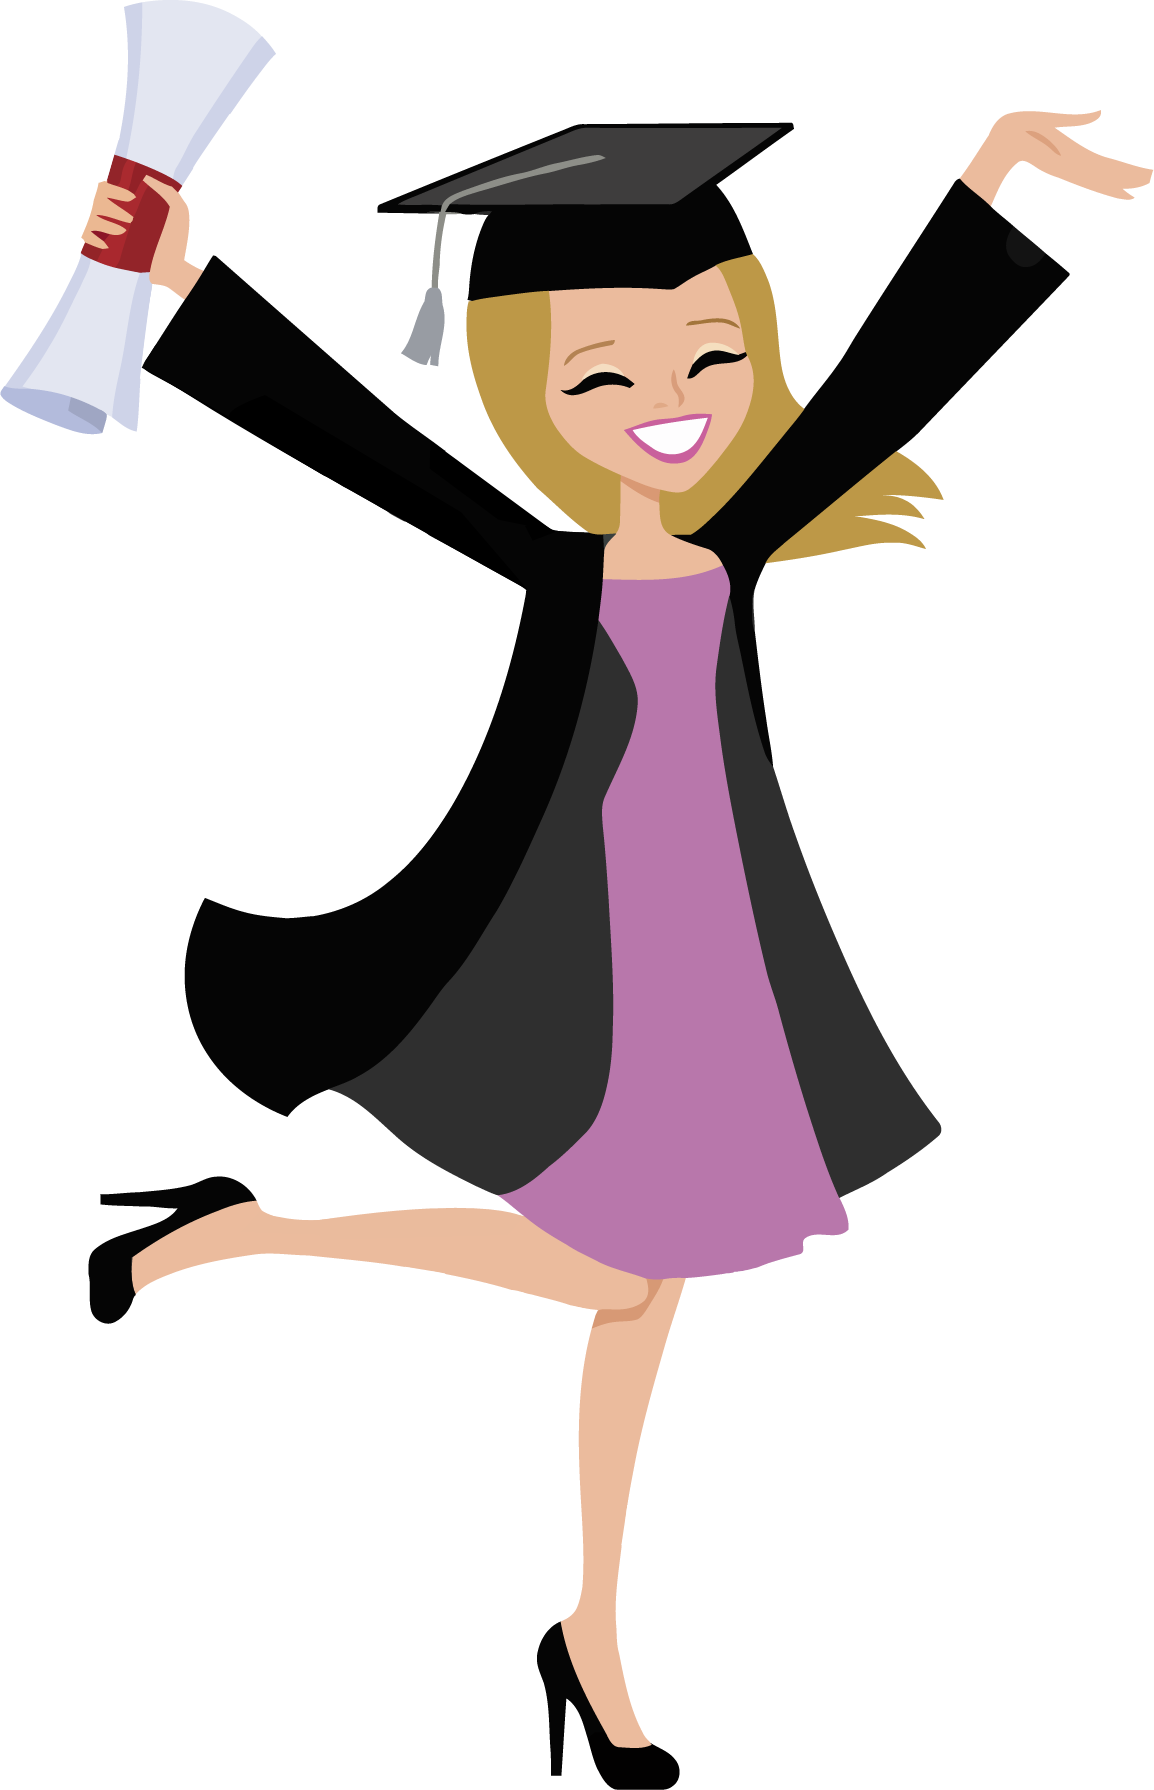 Escola formatura graduacion pinterest. Yearbook clipart photoshoot